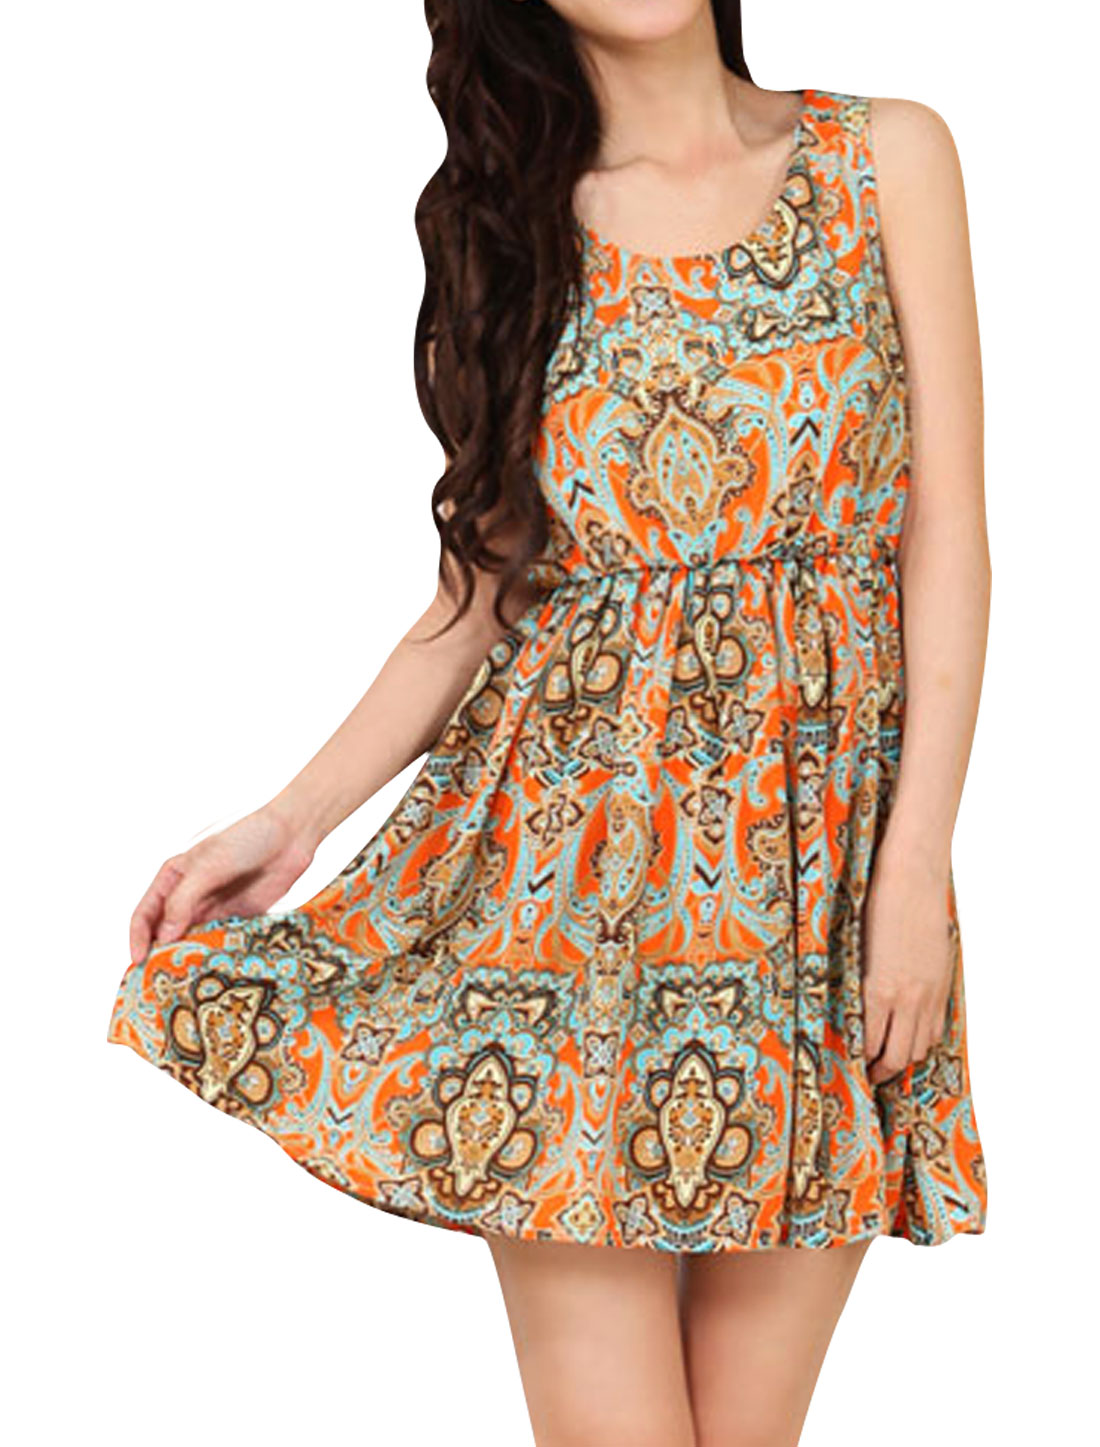 Women Sleeveless Scoop Neck Elastic Waist Printed Mini Dress Orange XS